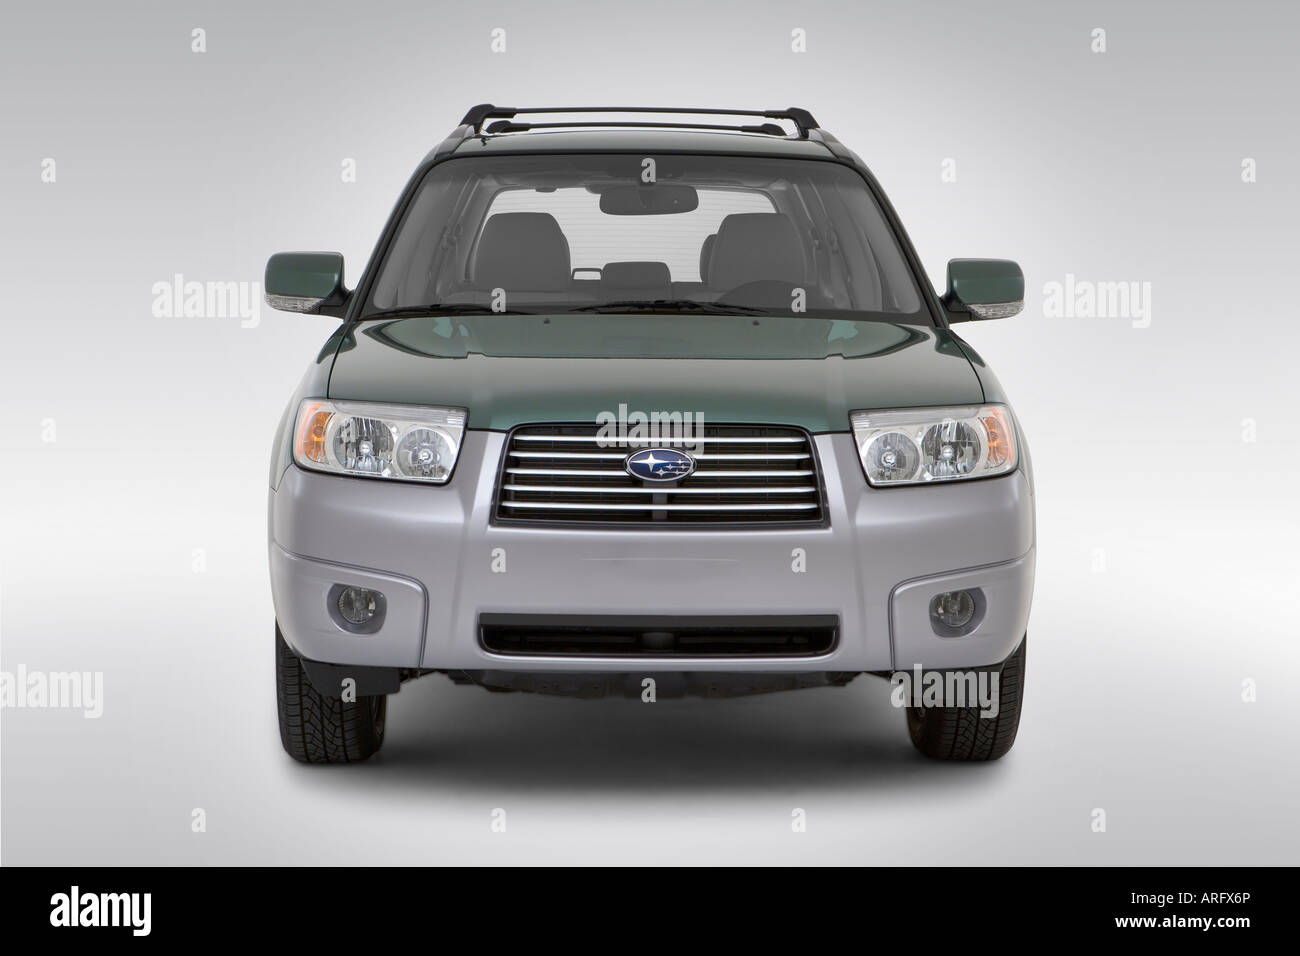 2008 subaru forester 2 5 in stock photos 2008 subaru forester 2 2008 subaru forester 25 x ll bean in green lowwide front stock vanachro Image collections